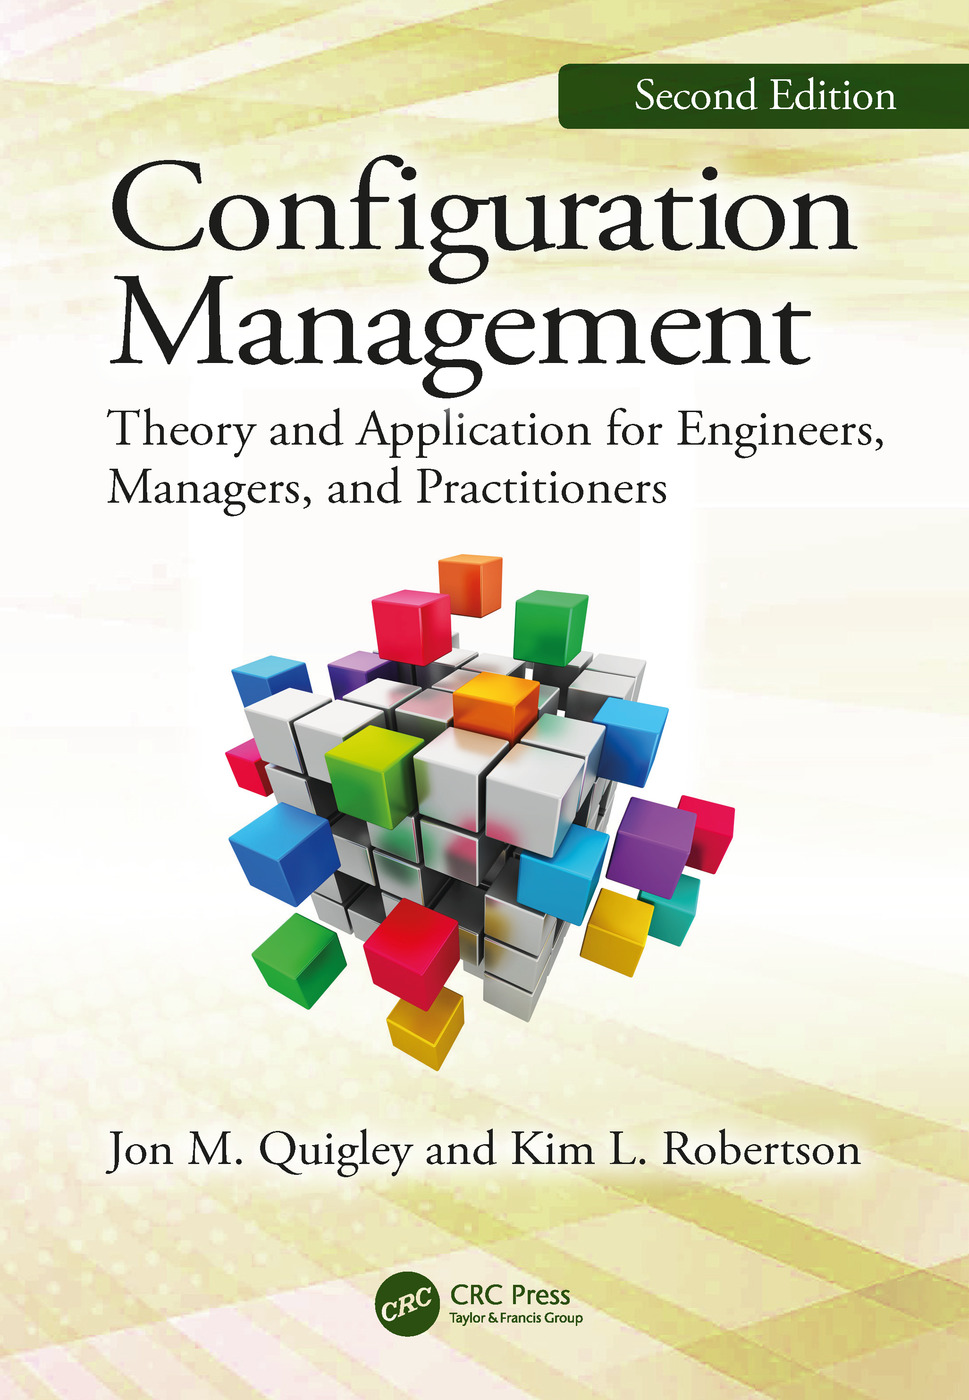 Configuration Management, Second Edition: Theory and Application for Engineers, Managers, and Practitioners book cover